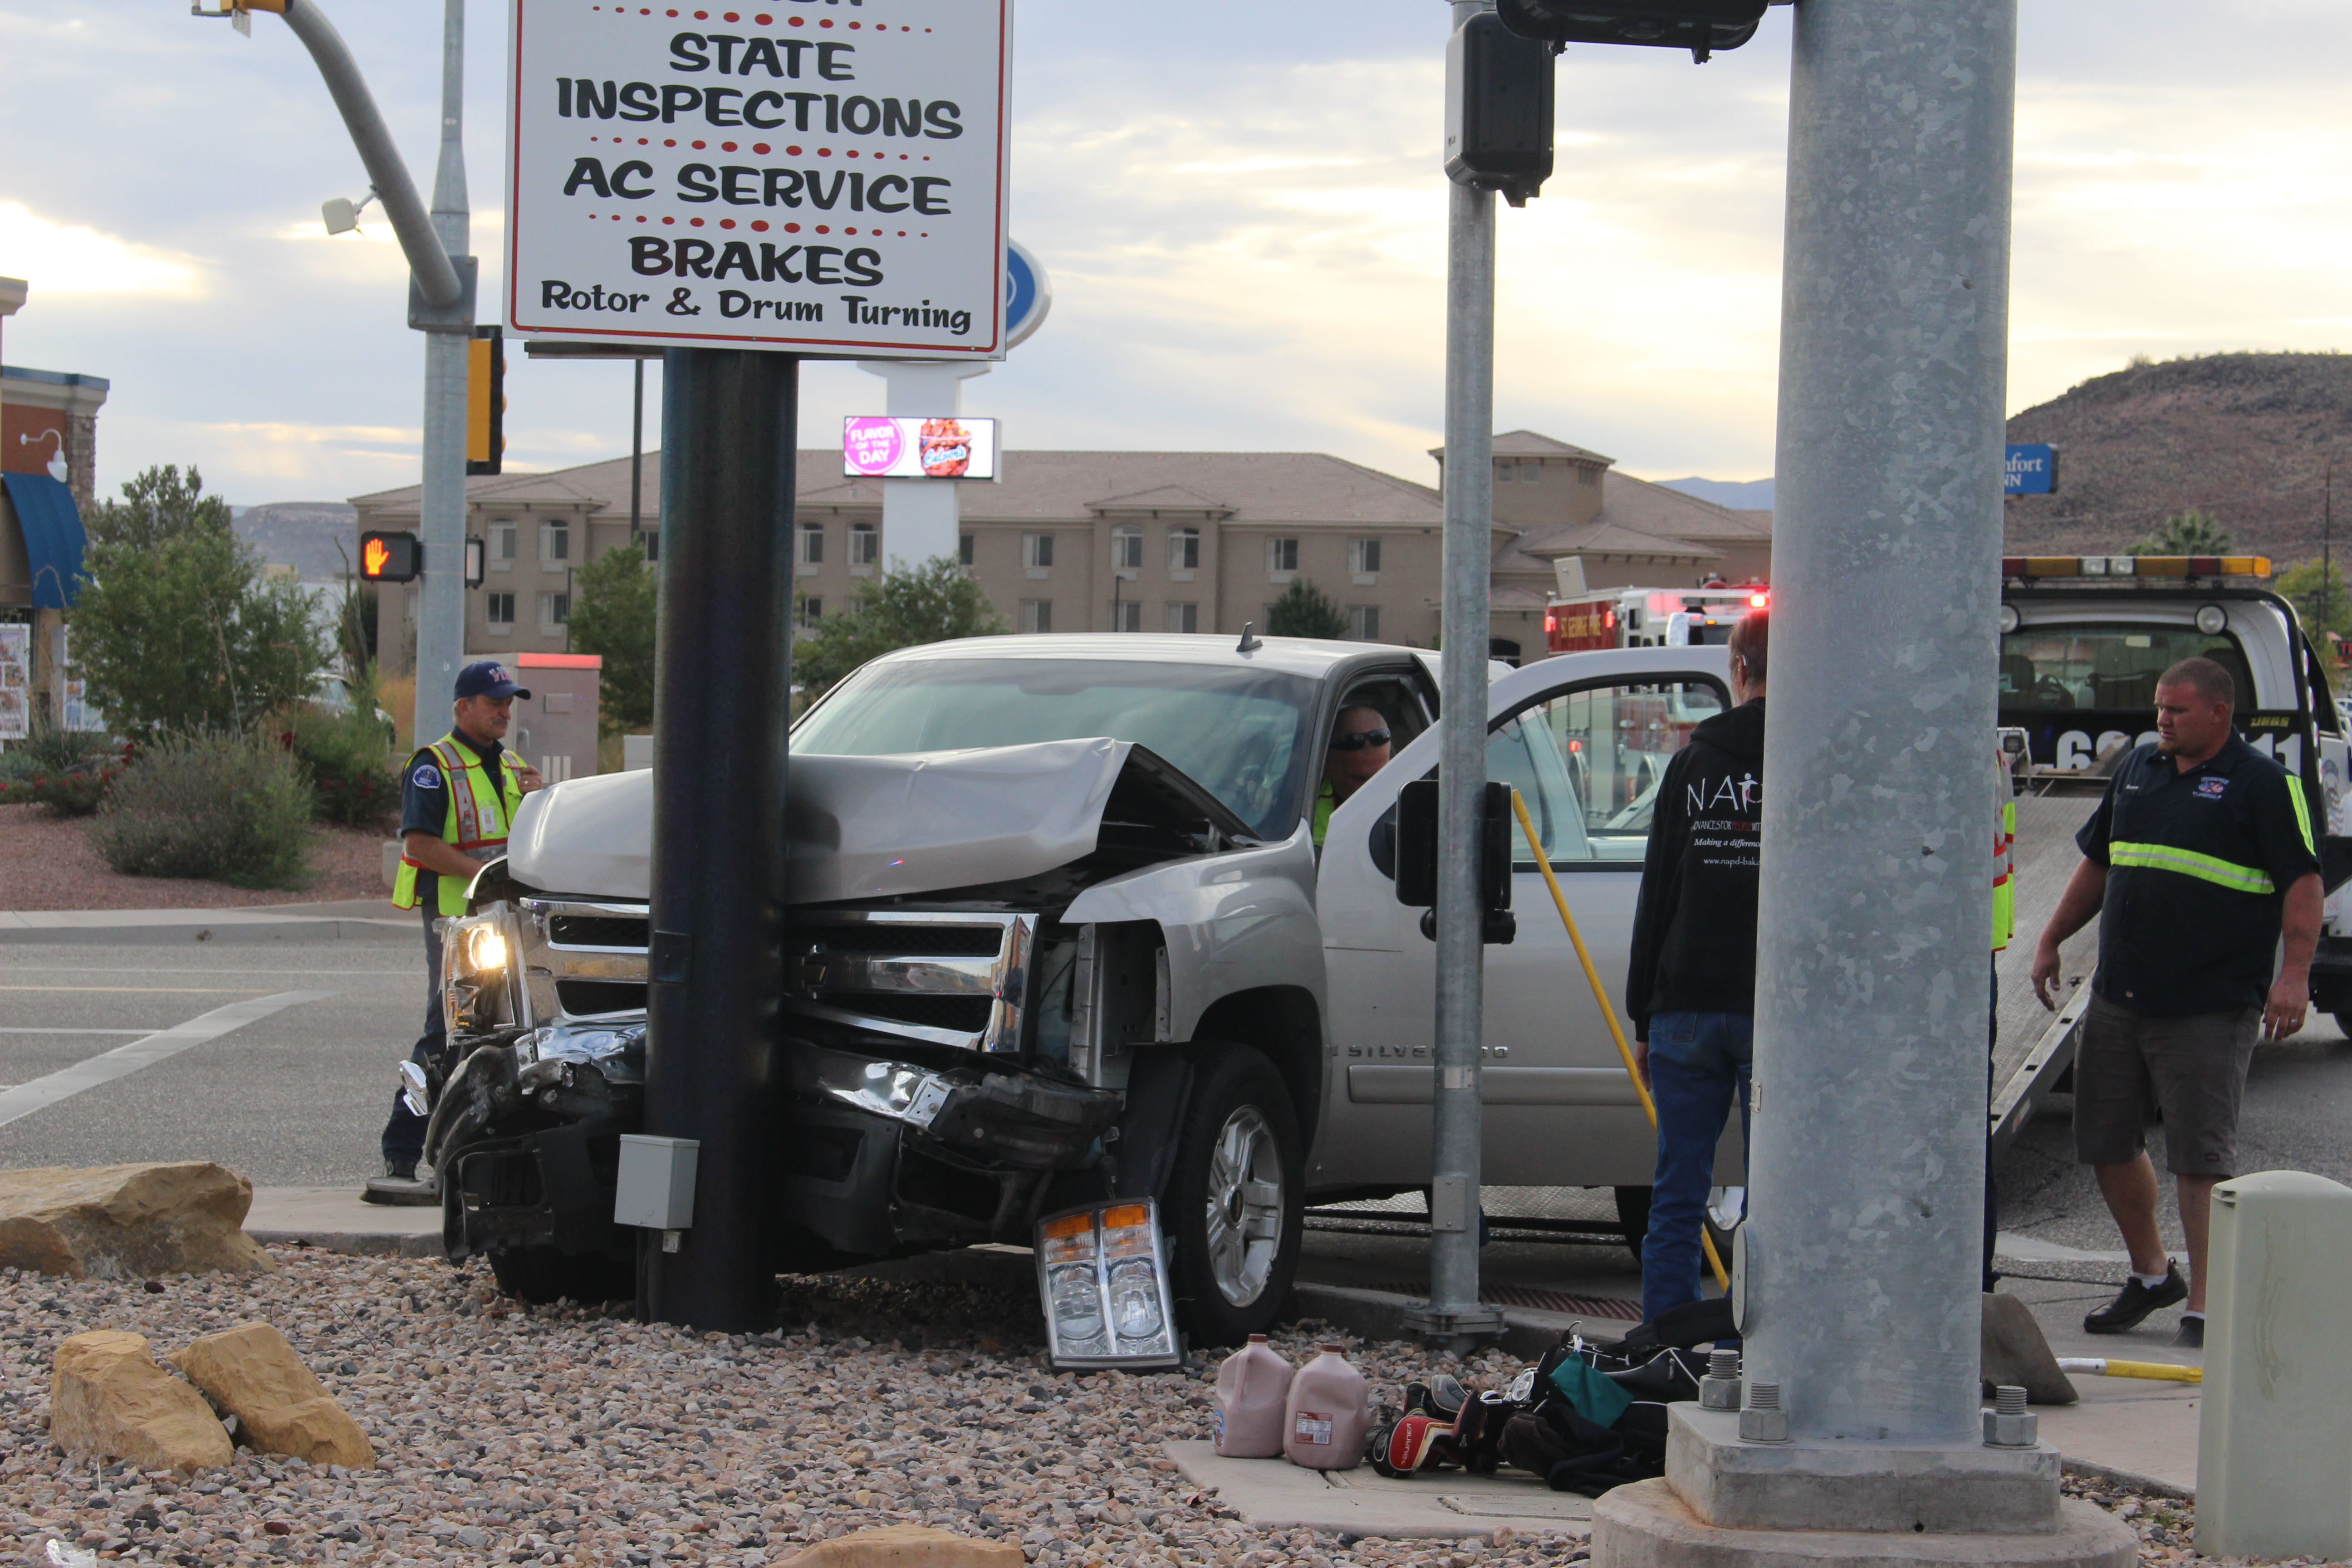 Emergency personnel clean up after a 3-car crash on Riverside Drive, St. George, Utah, Nov. 12, 2016 | Photo by Joseph Witham, St. George News